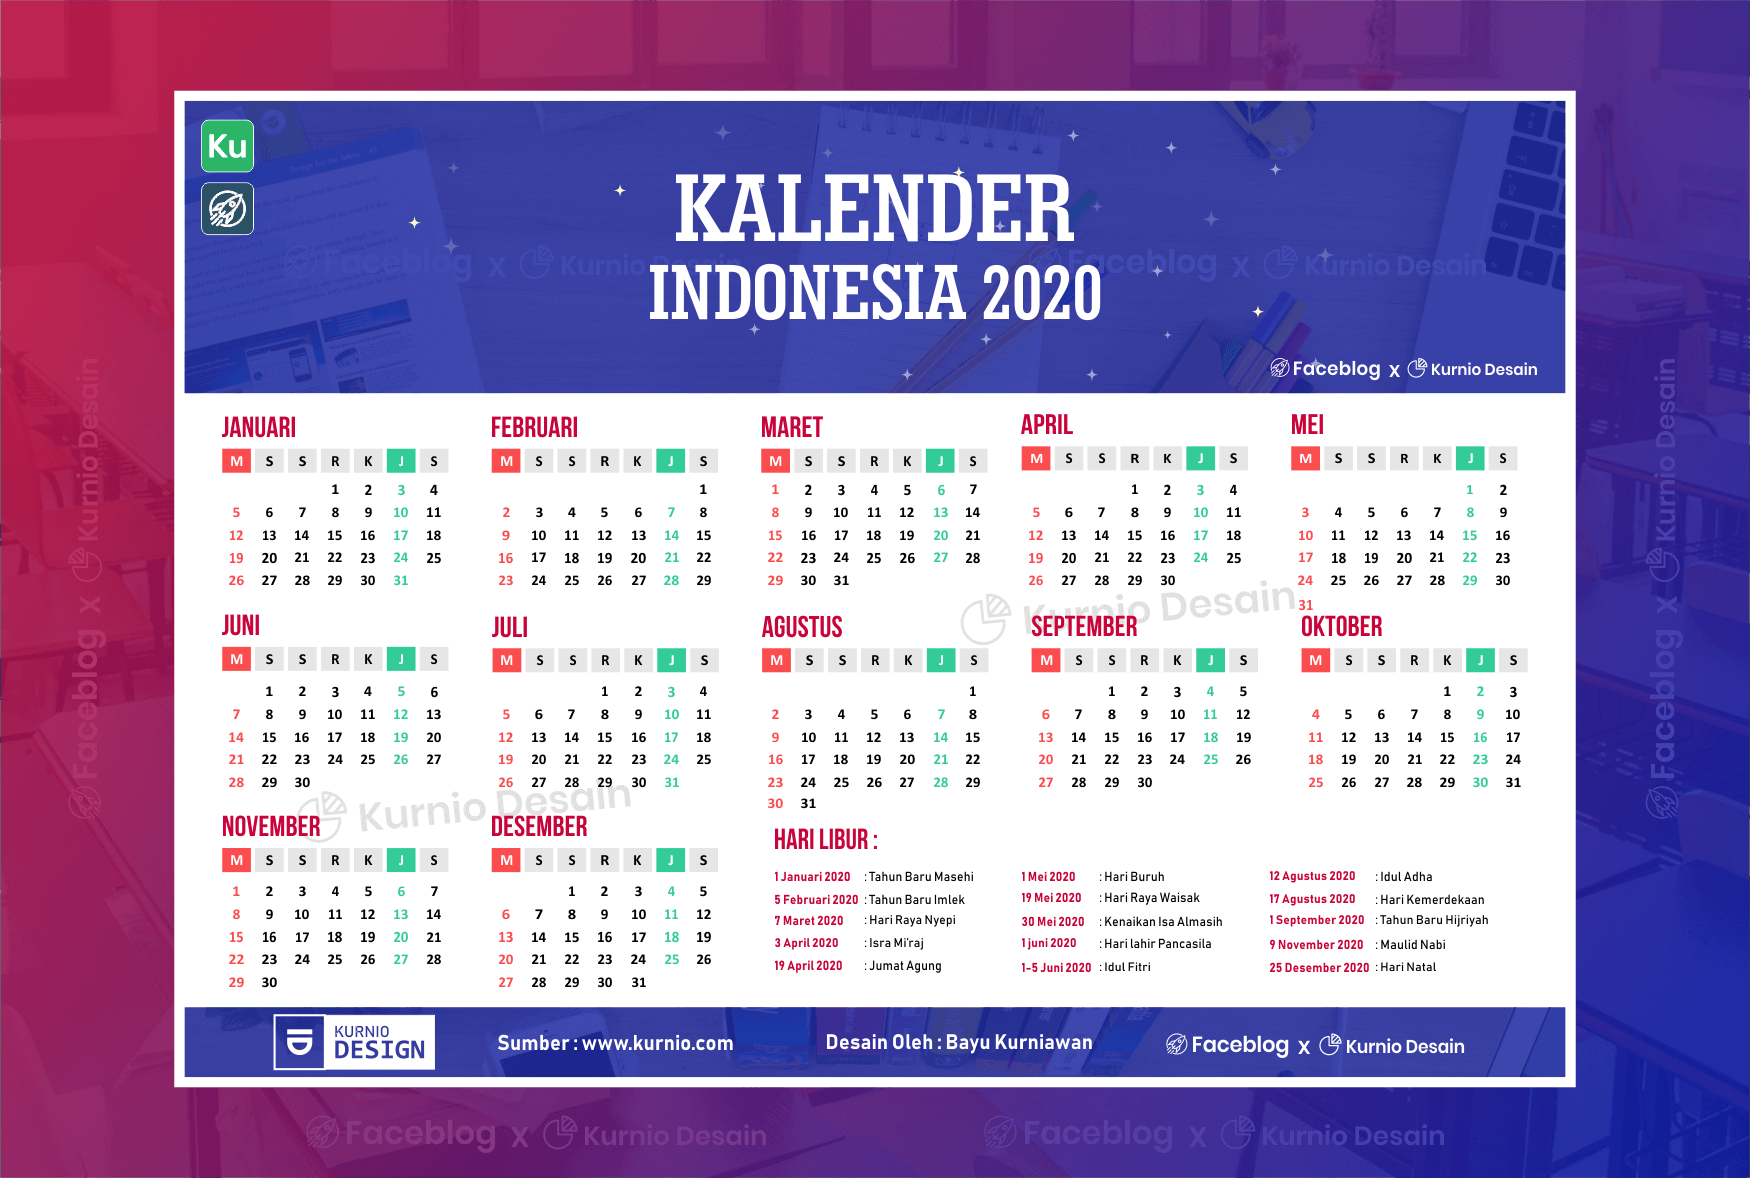 Index Of Wpcontentuploads201907 with regard to Kalendar Tahun 2020